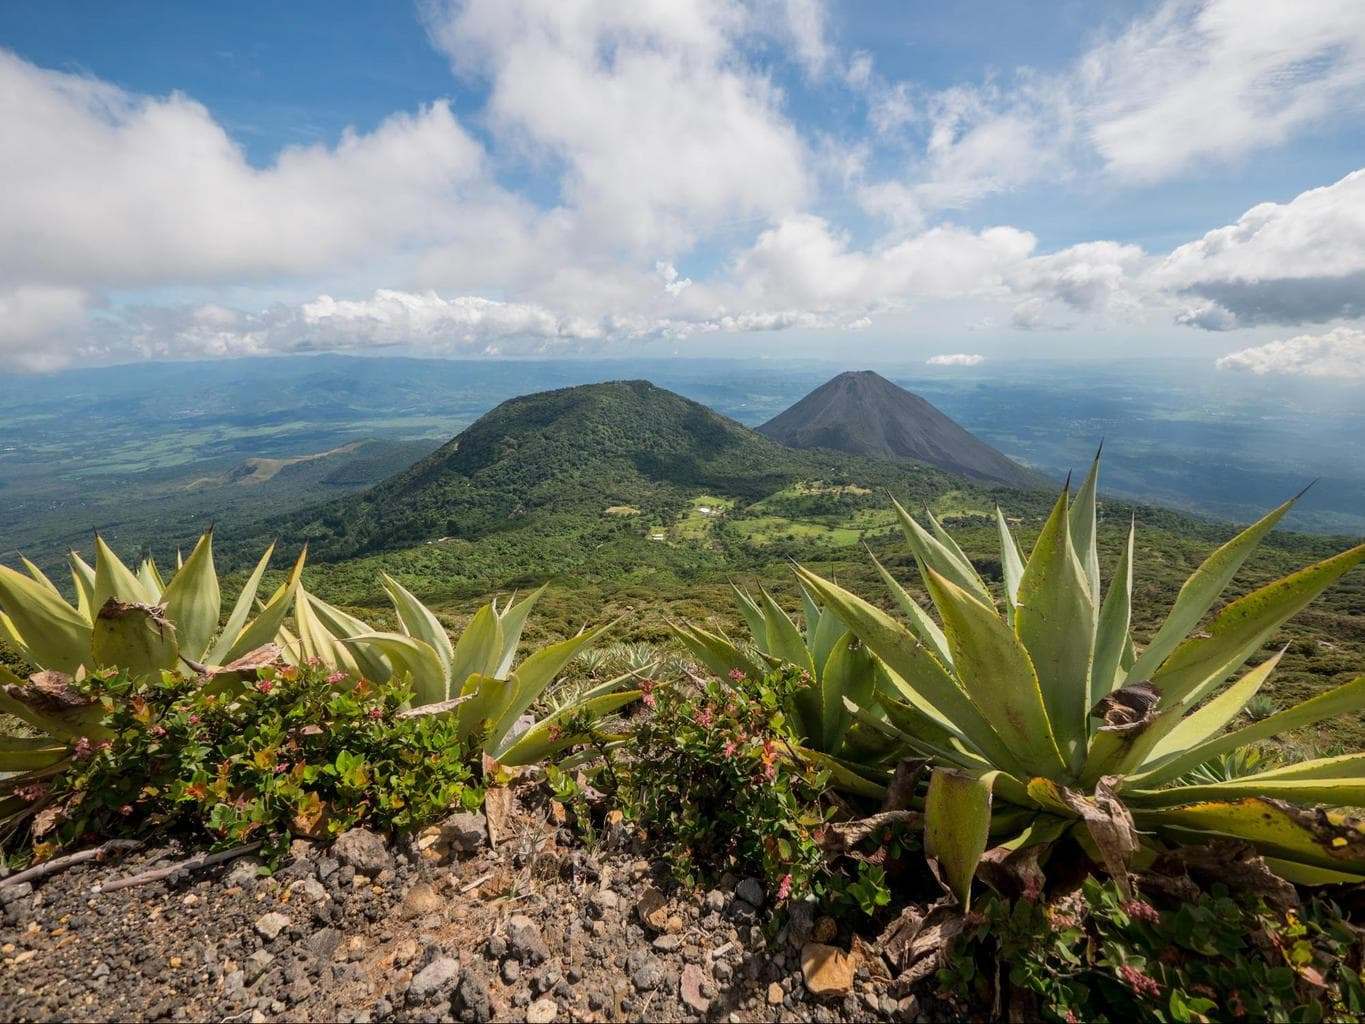 View of volcanoes and cactus